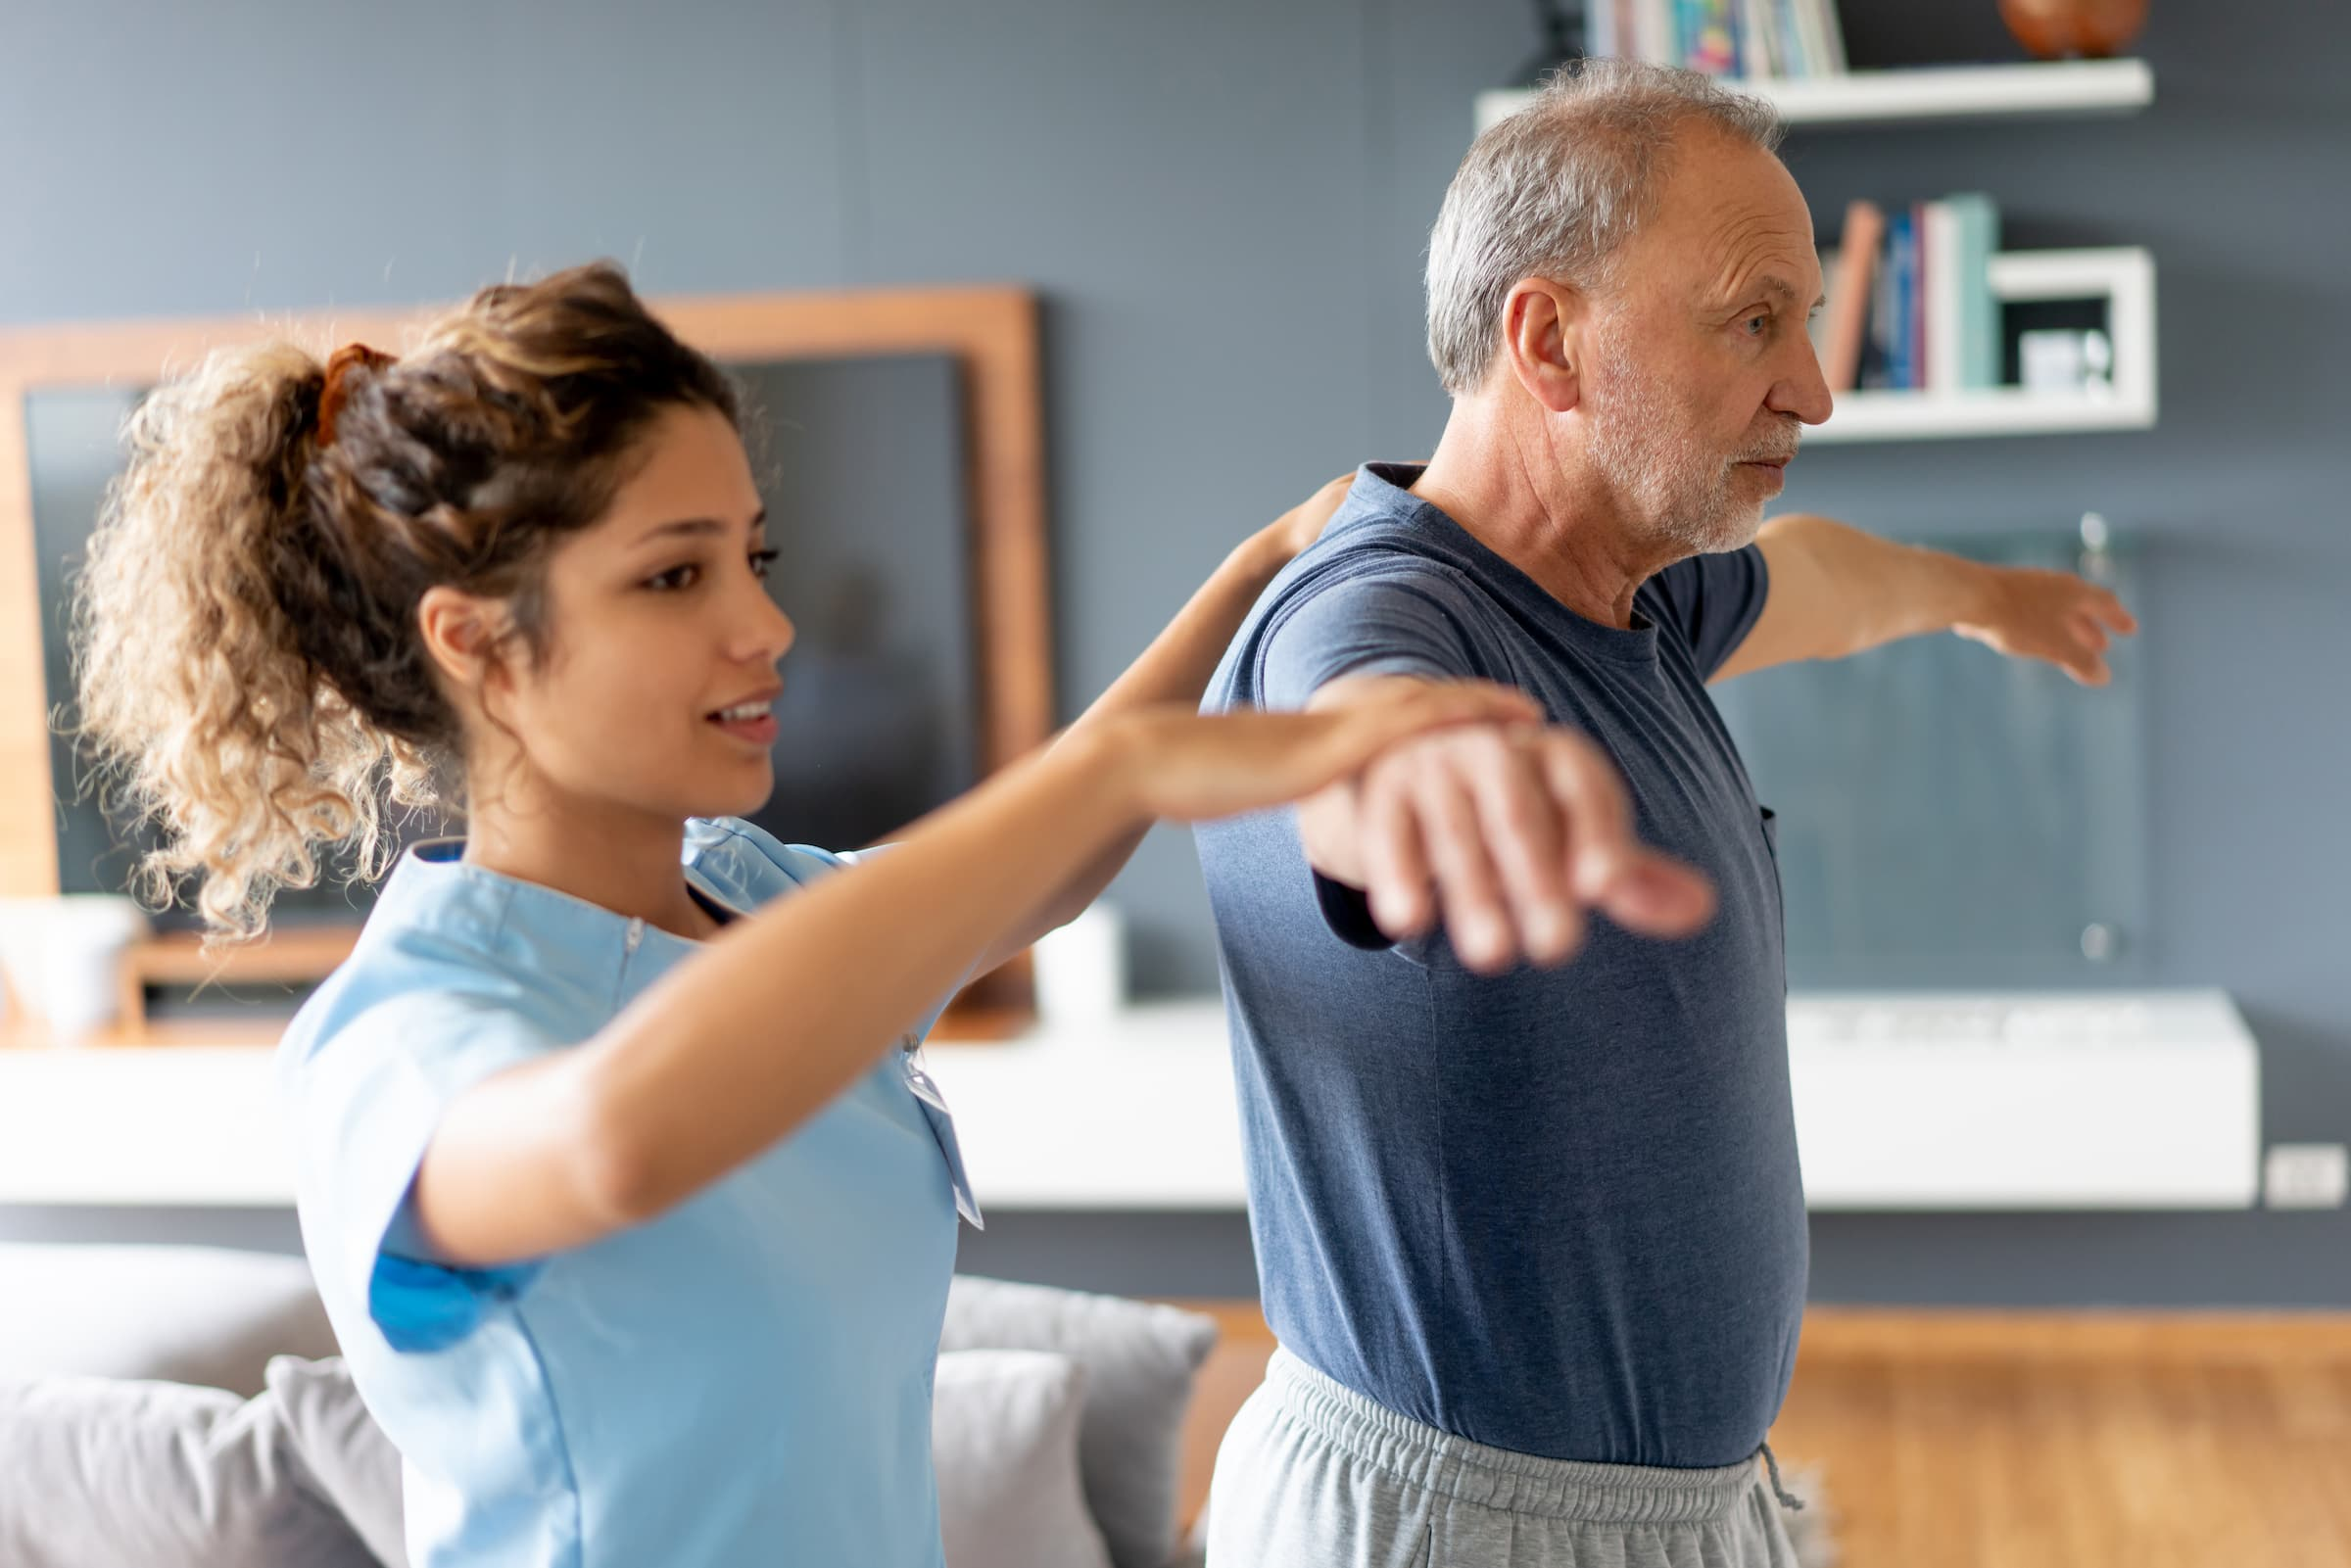 hispanic physical therapist helping elderly senior white man do physical therapy arm stretch movements